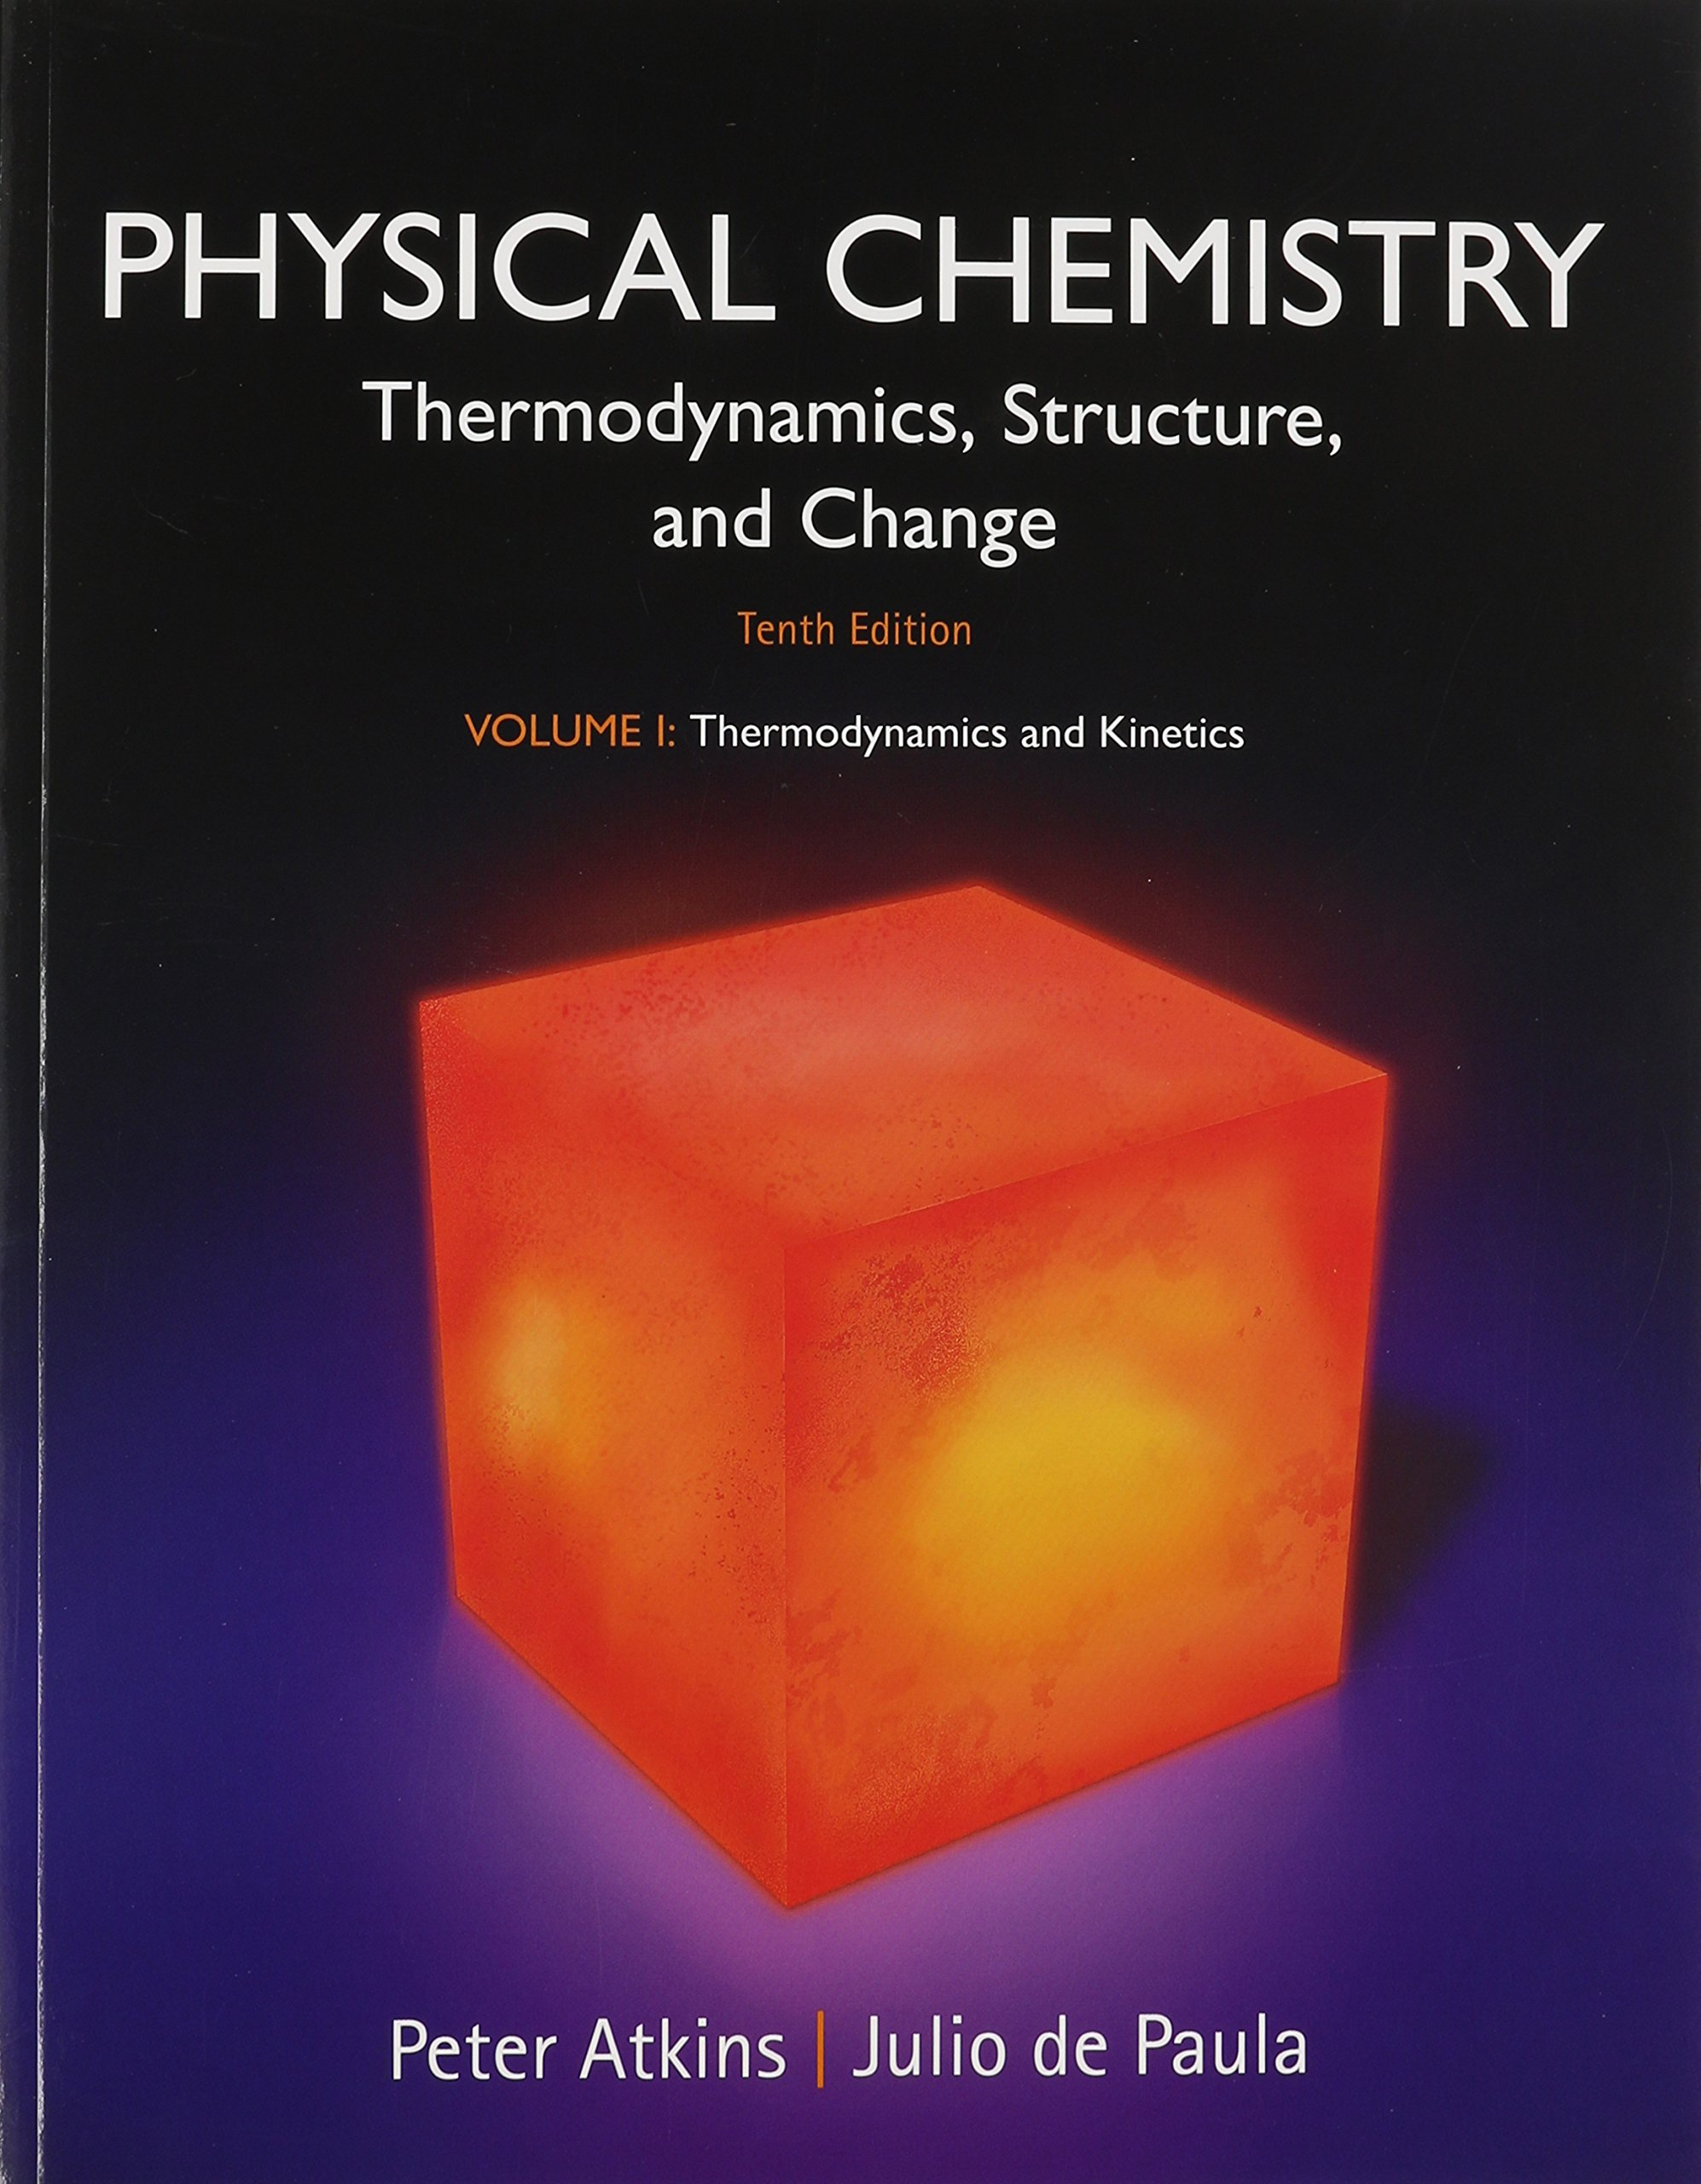 Buy Physical Chemistry: Thermodynamics and Kinetics: Thermodynamics,  Structure, and Change: 1 Book Online at Low Prices in India | Physical  Chemistry: ...